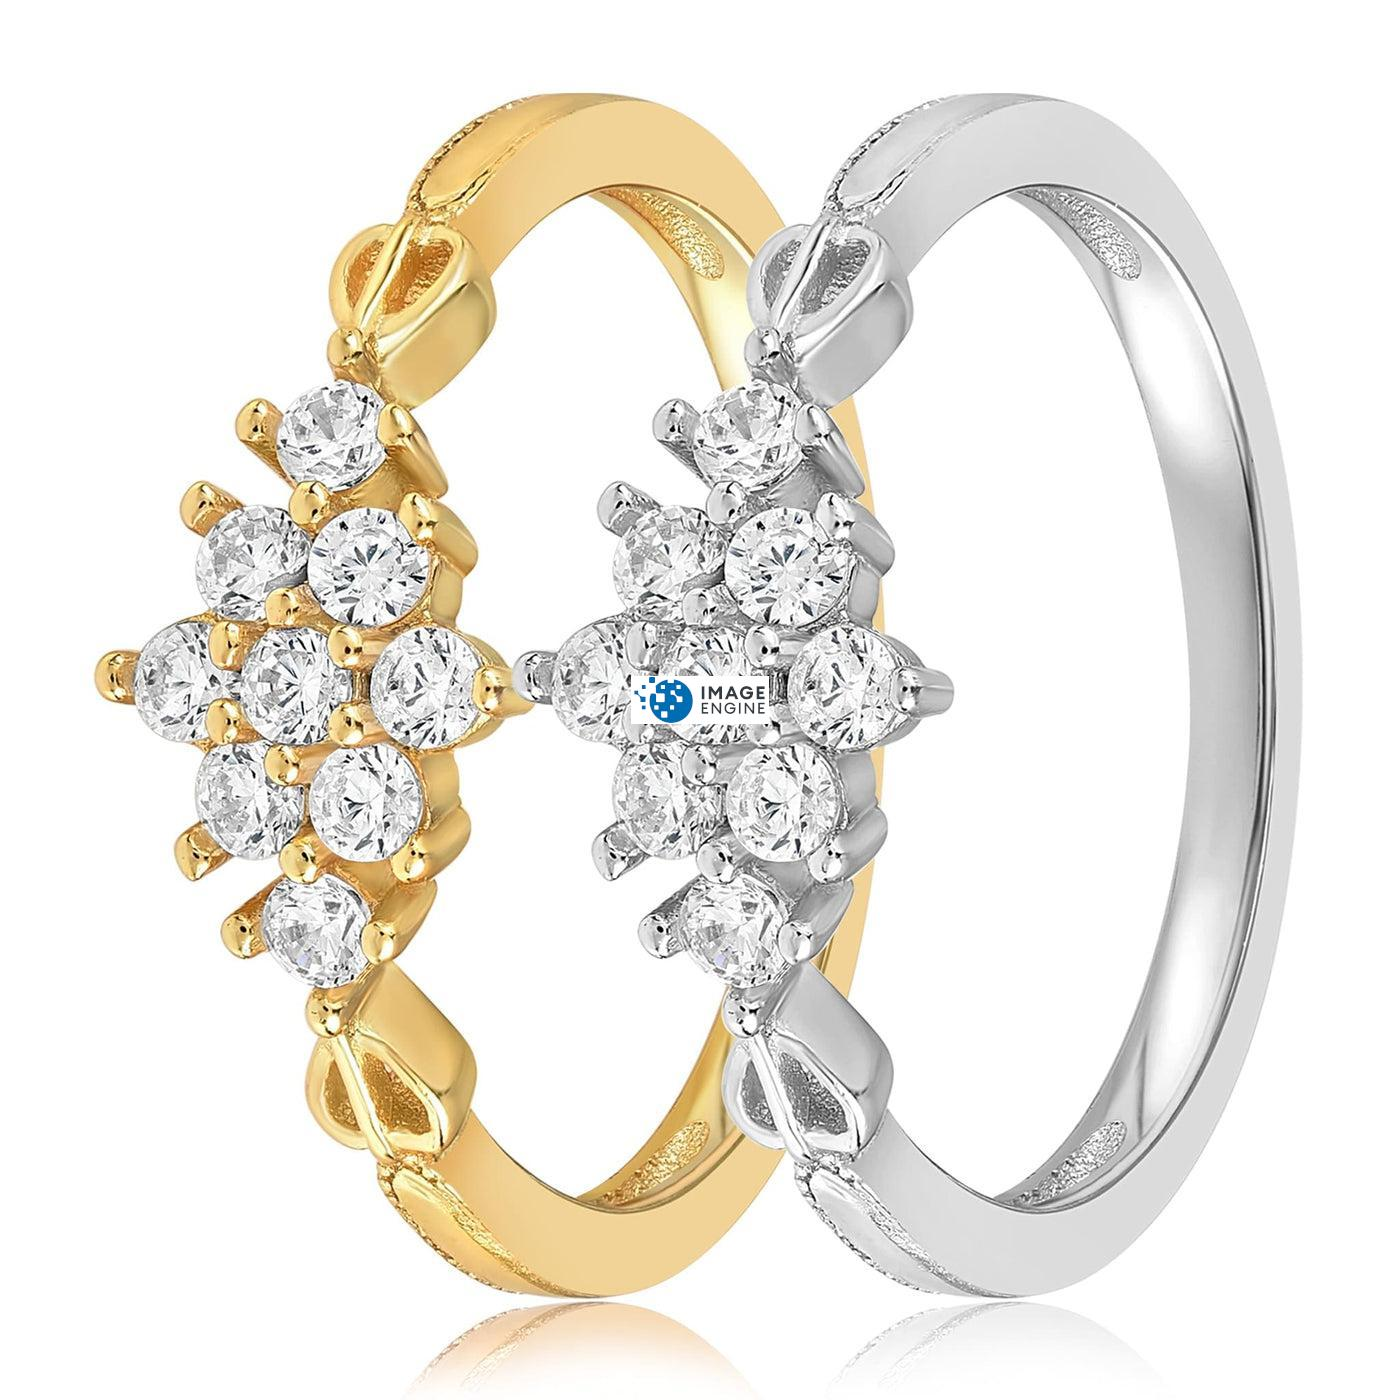 Sarah Snowflake Dainty Ring - Side by Side - 18K Yellow Gold and 925 Sterling Silver